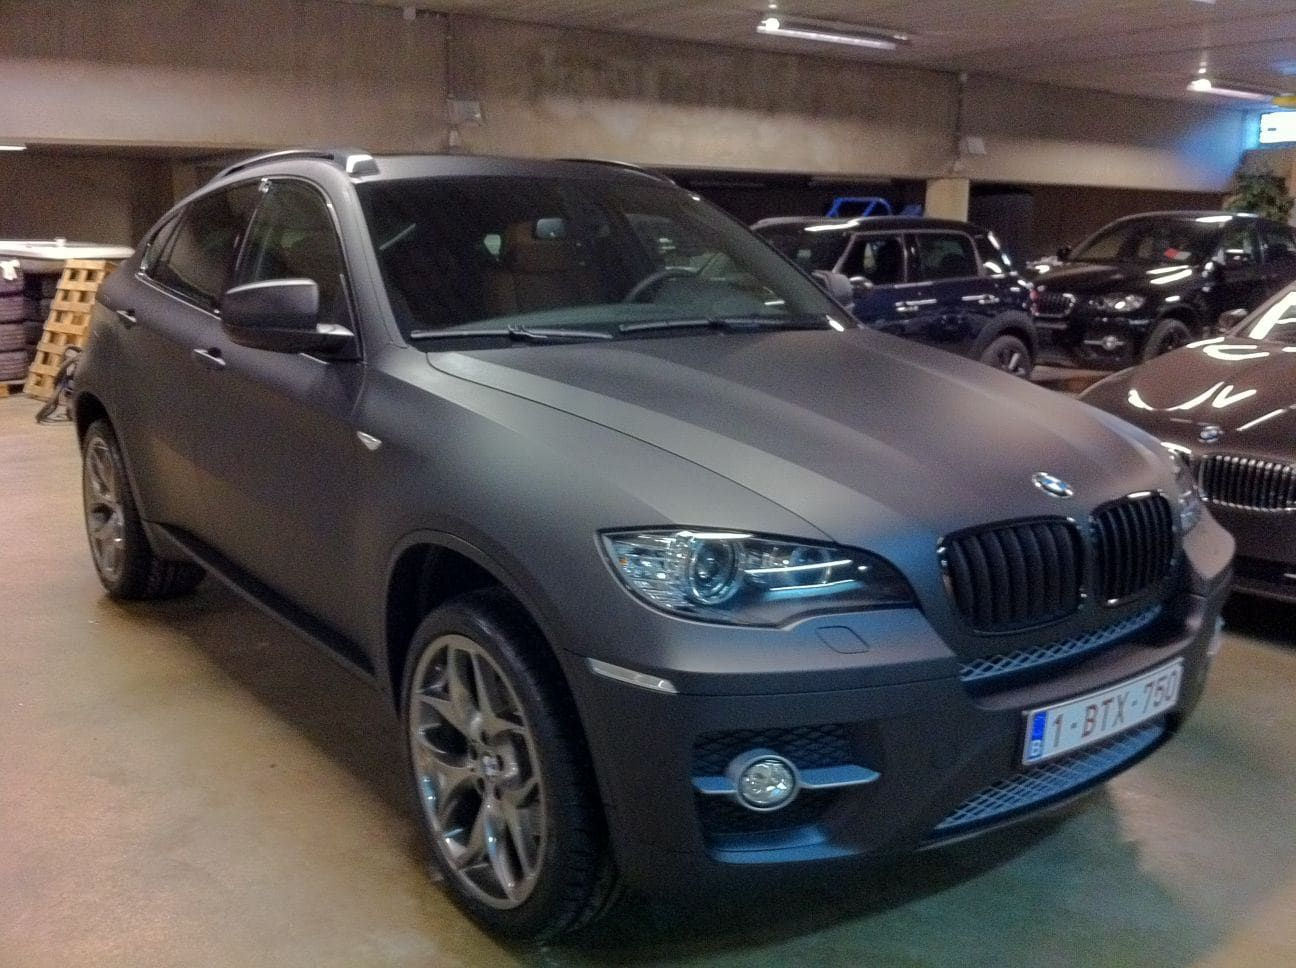 Bmw X6 Met Mat Zwarte Wrap Wrap My Ride